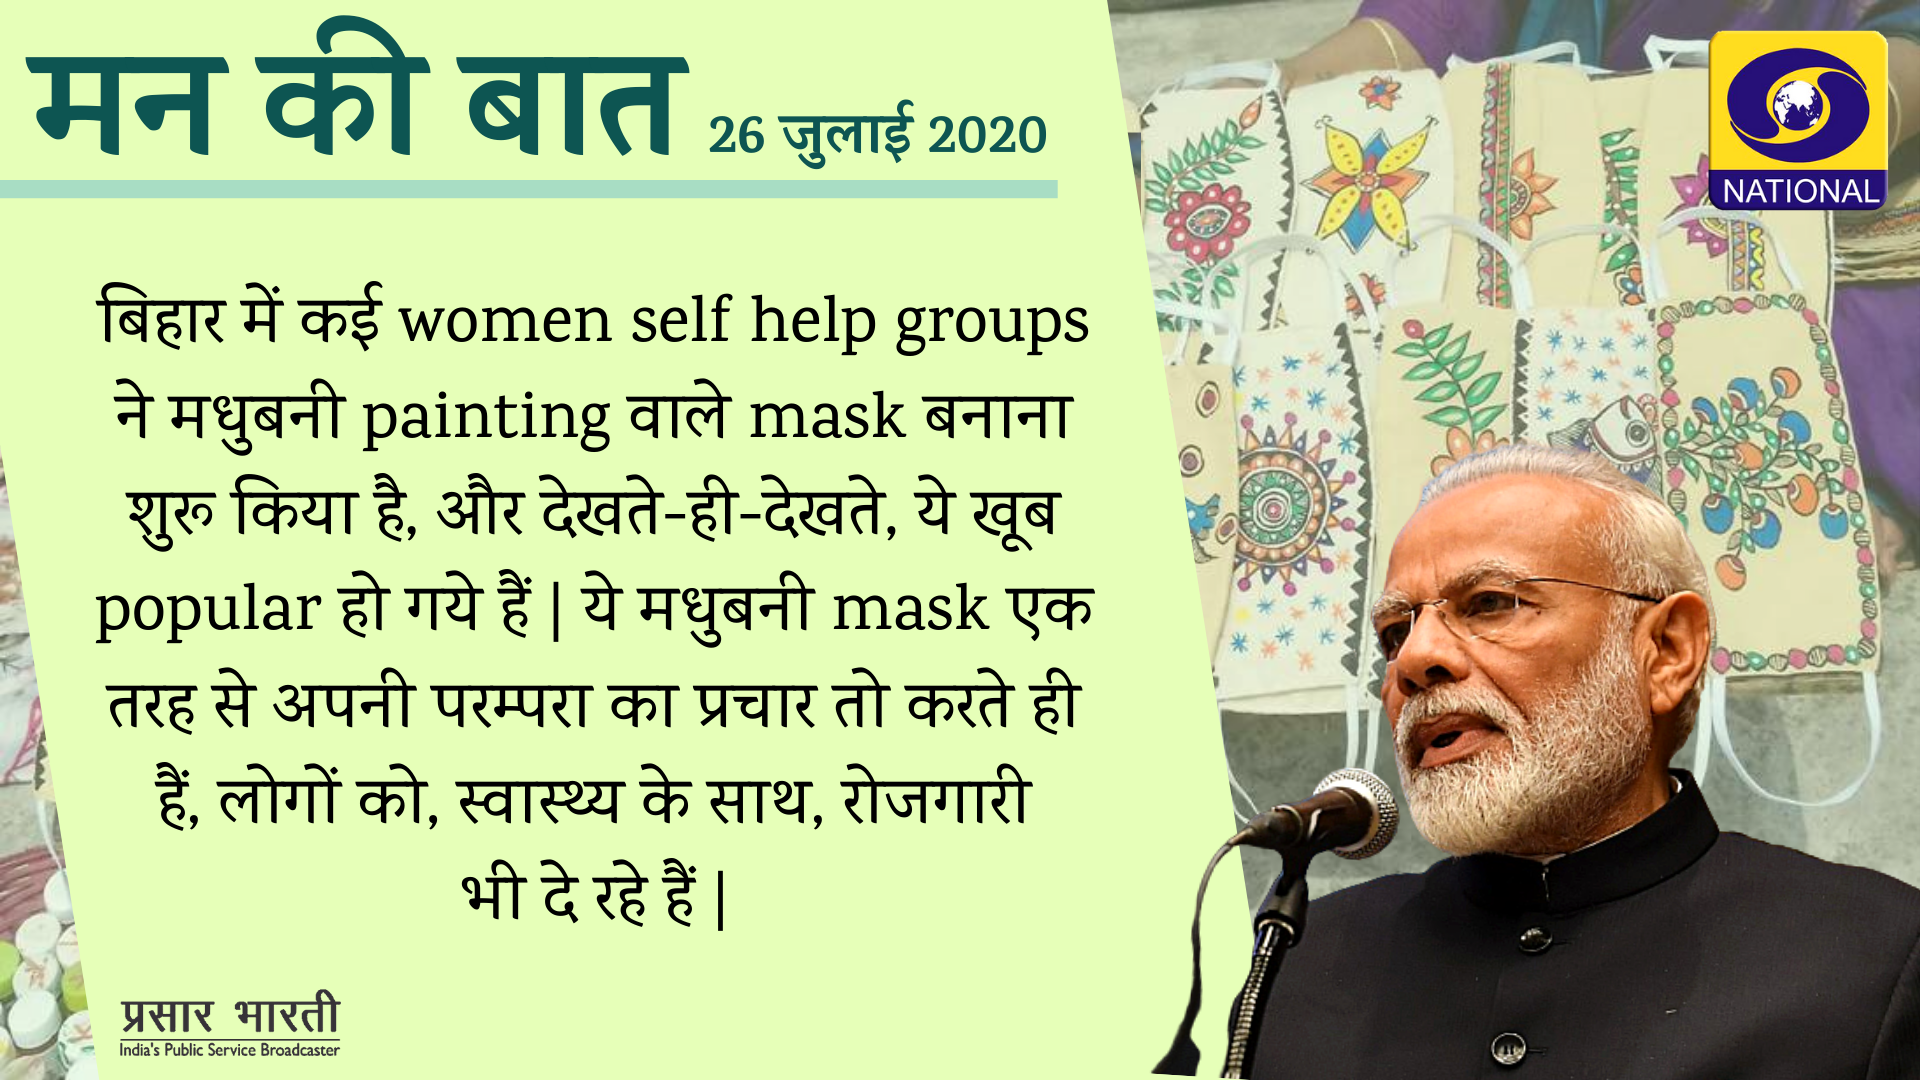 In Bihar, many women self help groups have begun making masks with Madhubani motifs…These masks, in a way, propagate a regional tradition; besides protecting health, they also create opportunities for livelihood:  PM narendramodi